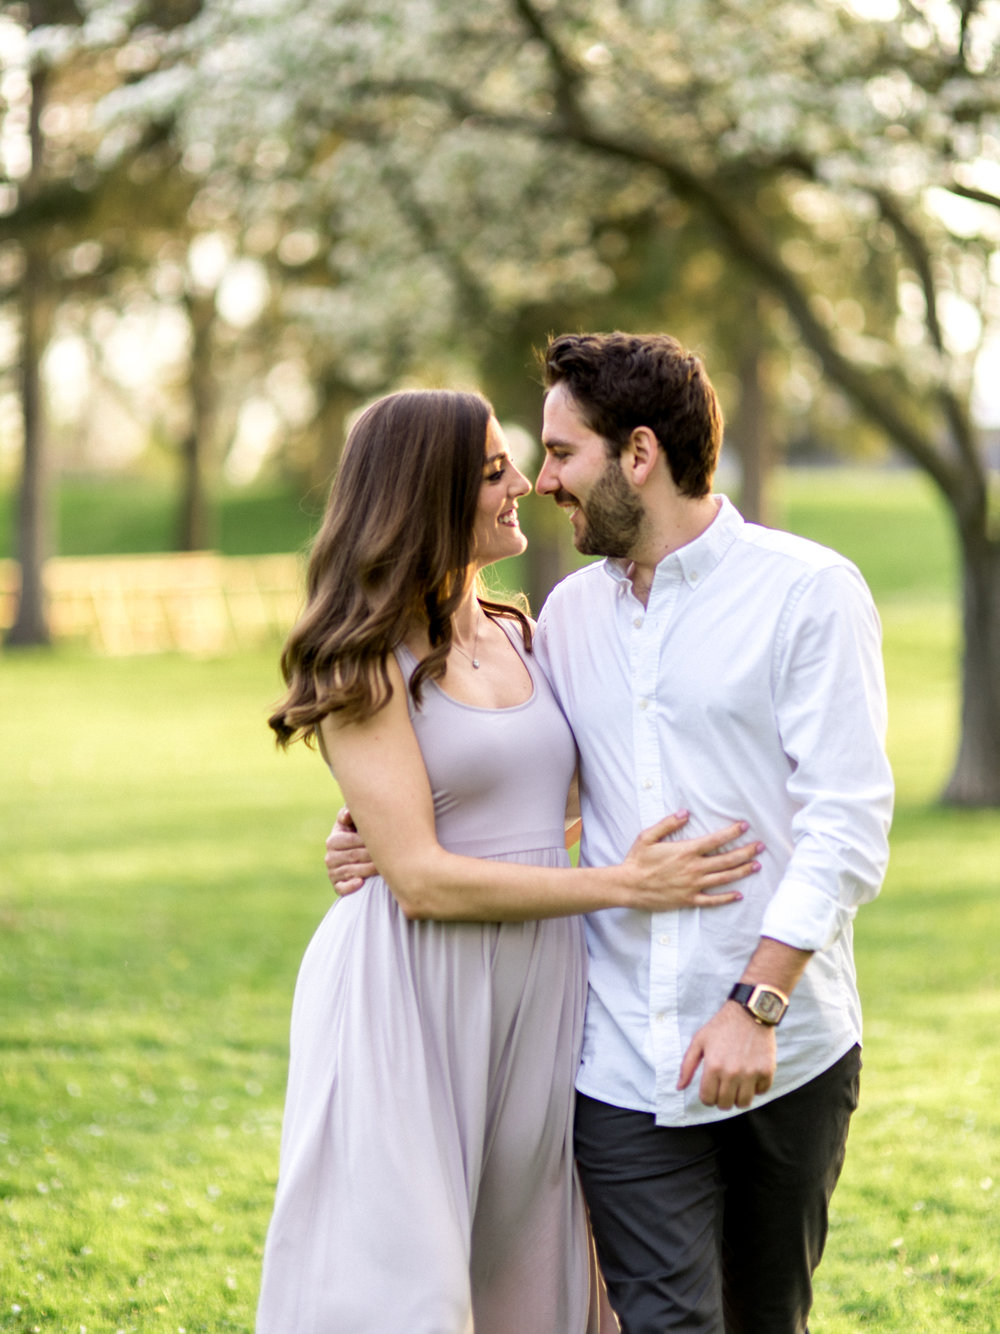 Chris & Heather's Engagement Session in Vineland Ontario Spring Blossoms Trees by Hush Hush Photography & Film Aidan Hennebry - 22.jpg